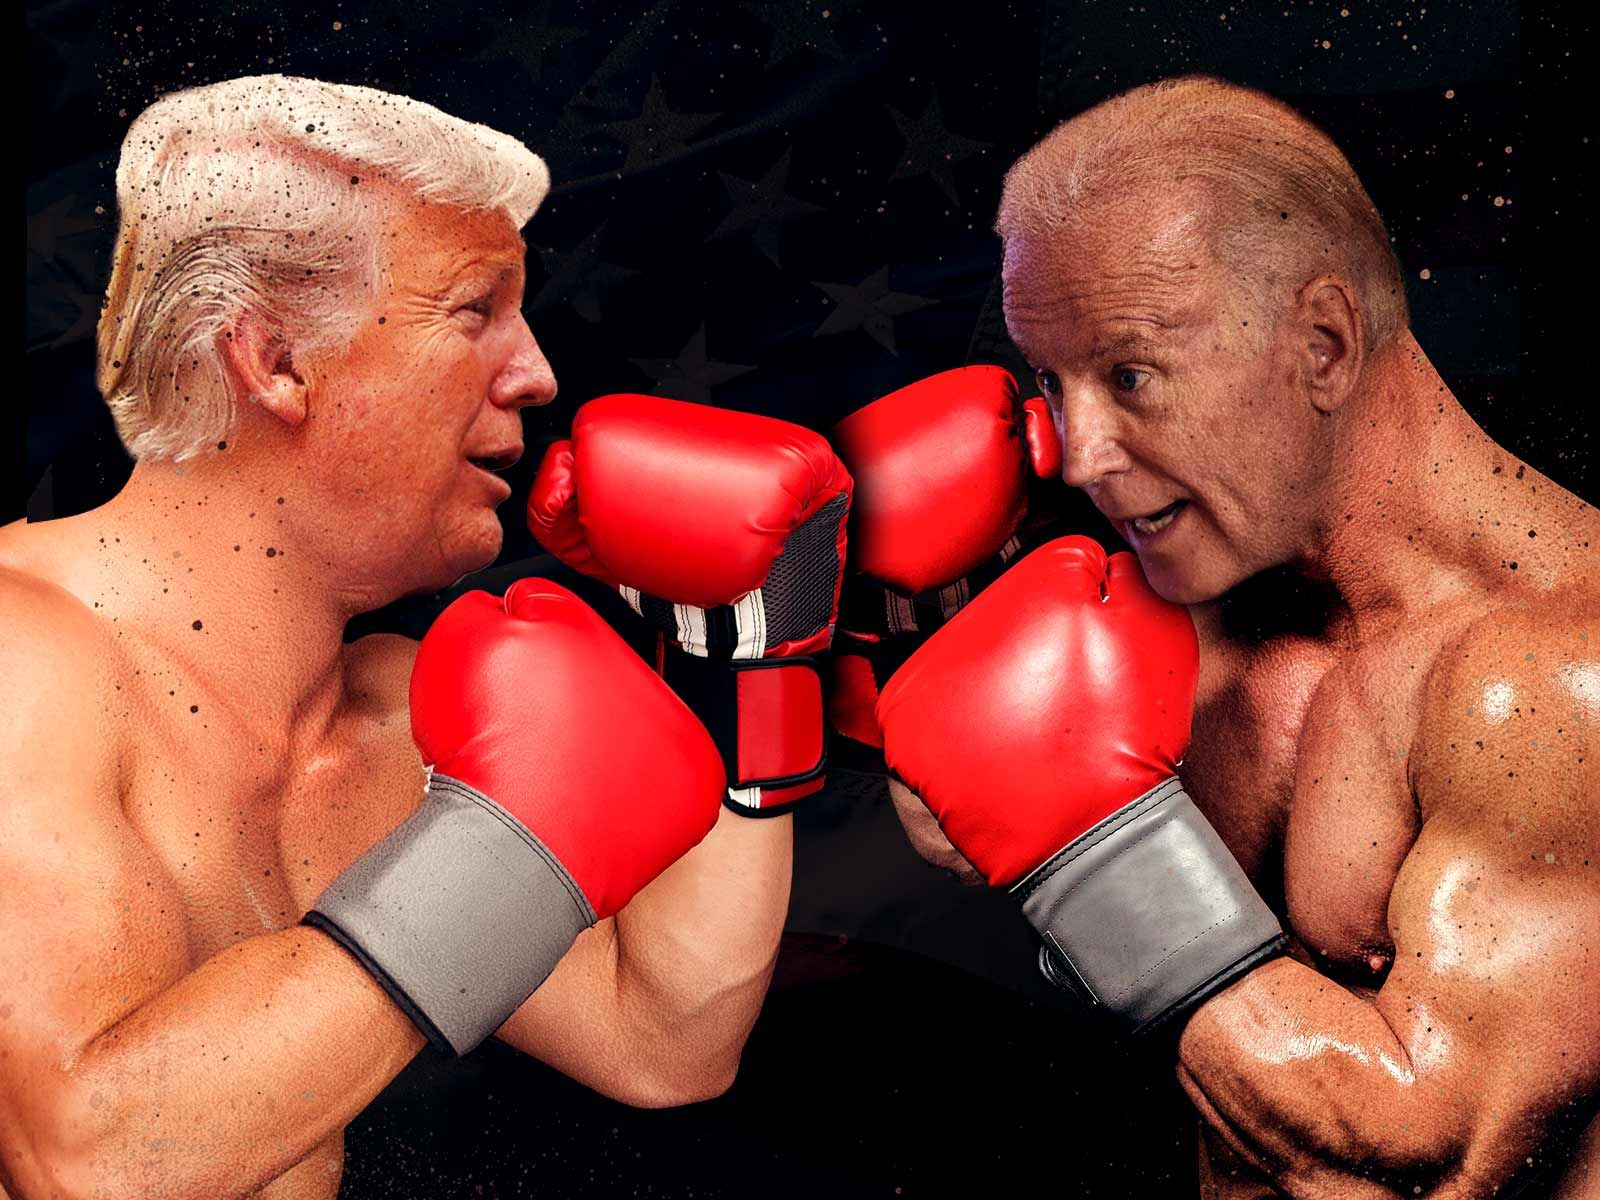 Donald Trump Says Joe Biden Would Go Down Fast And Hard In A Fight With Potus